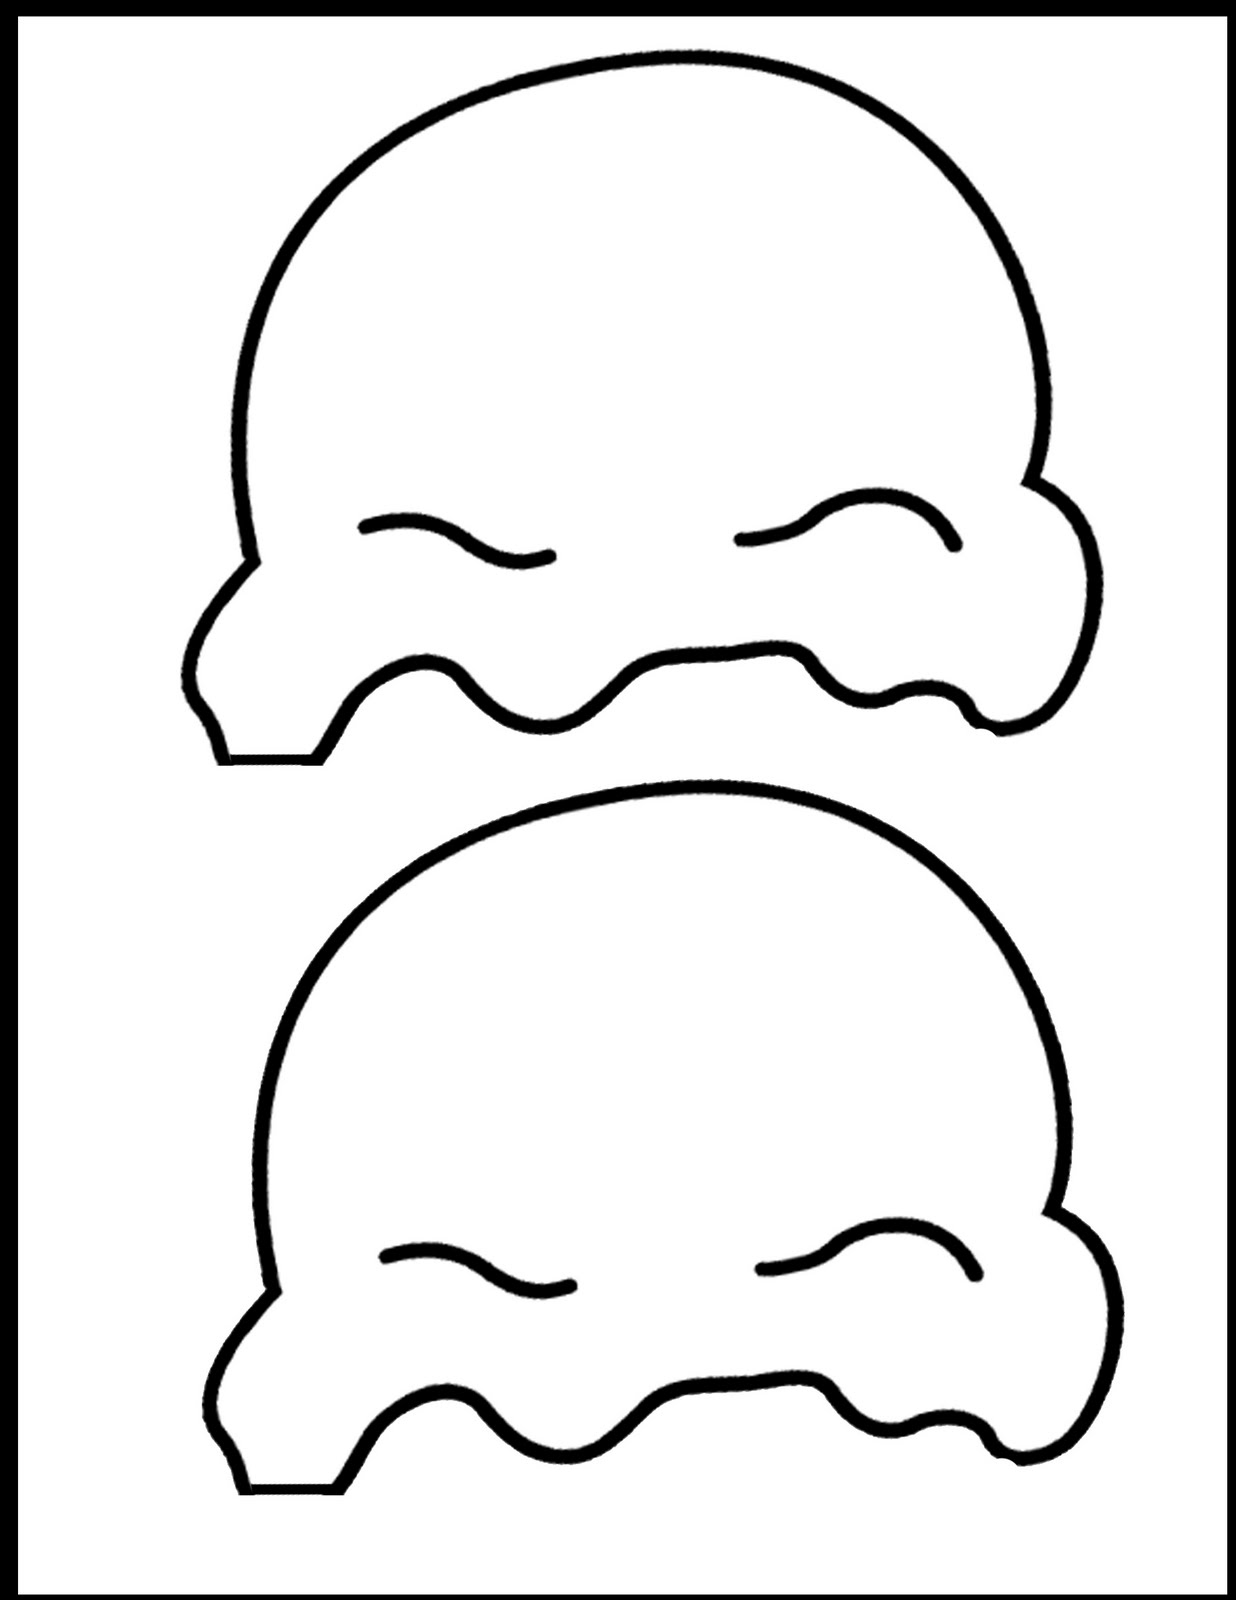 fboy tasting an ice cream colouring page coloring pages